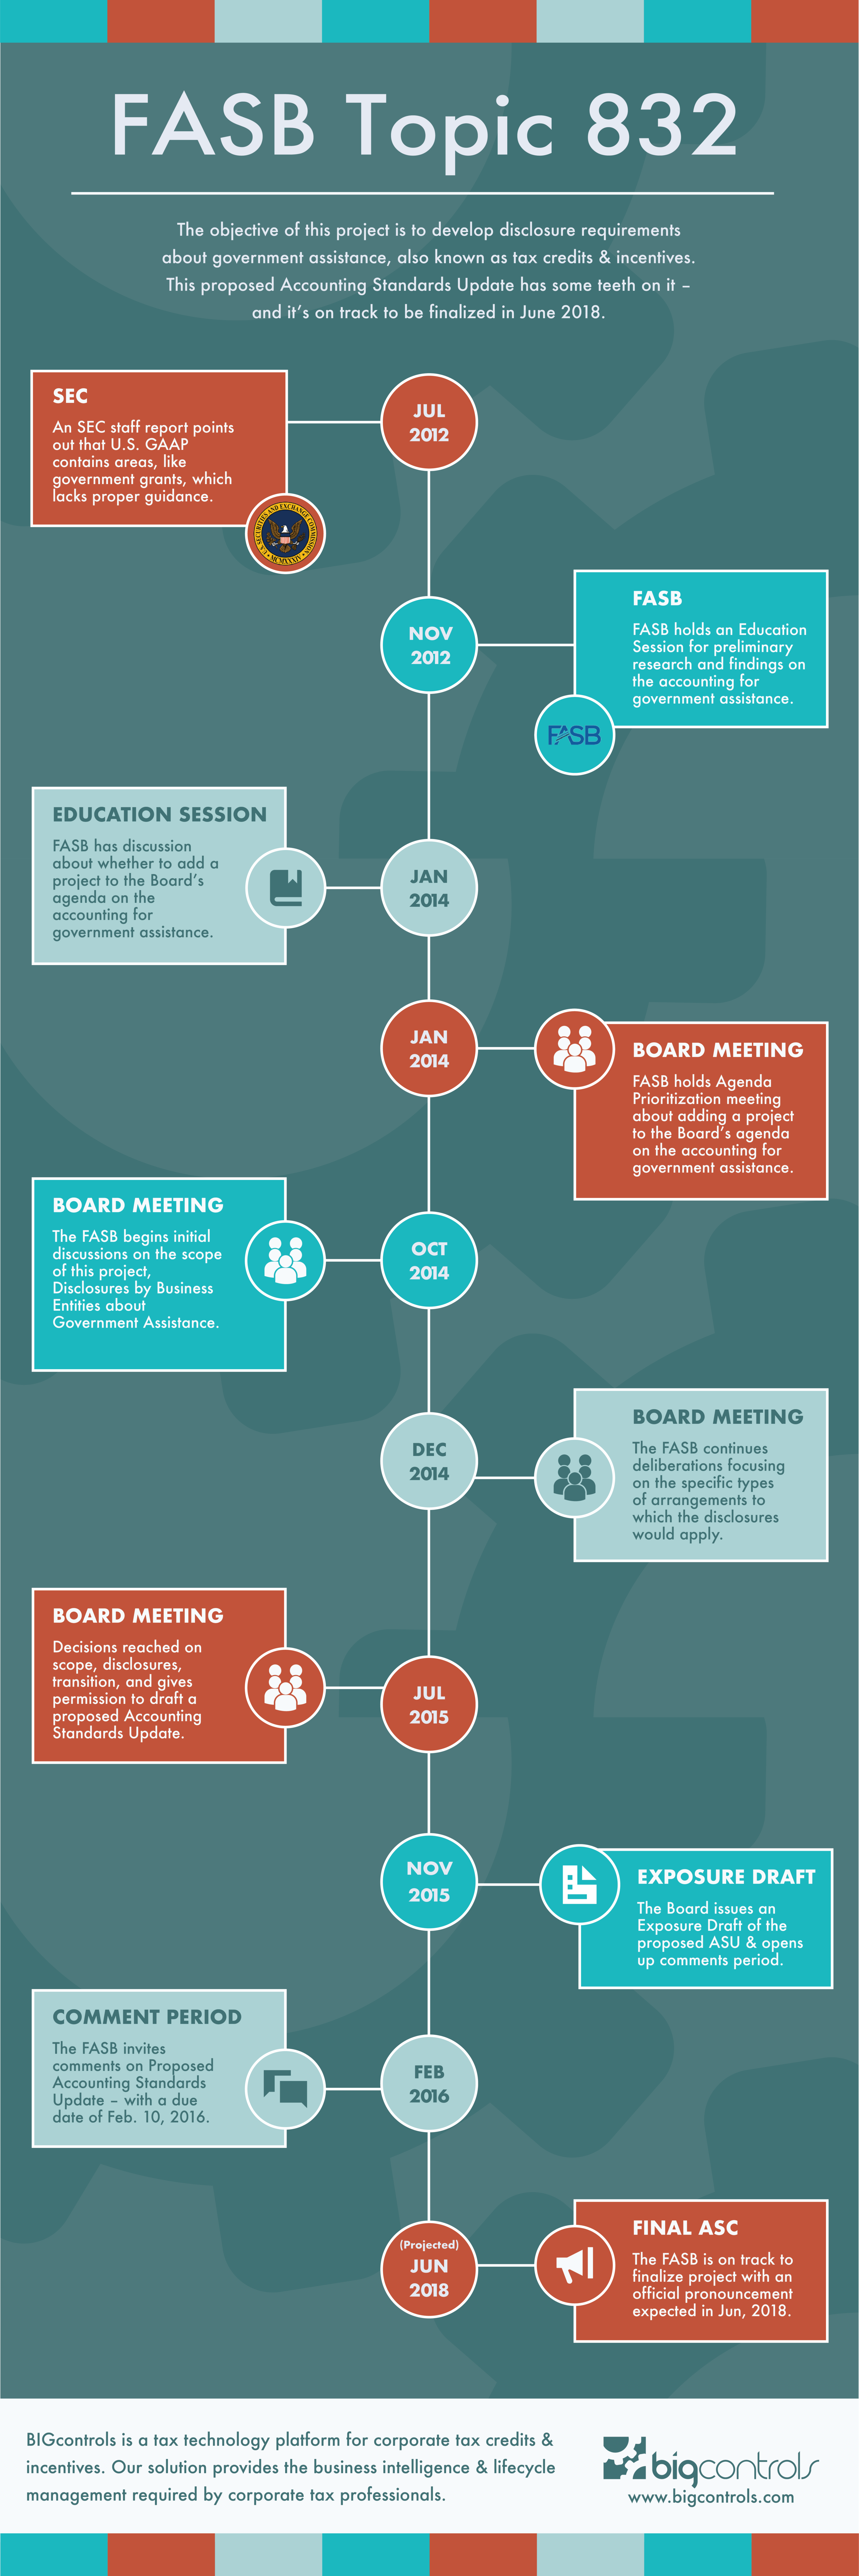 FASB Topic 832 Infographic - 2018.png